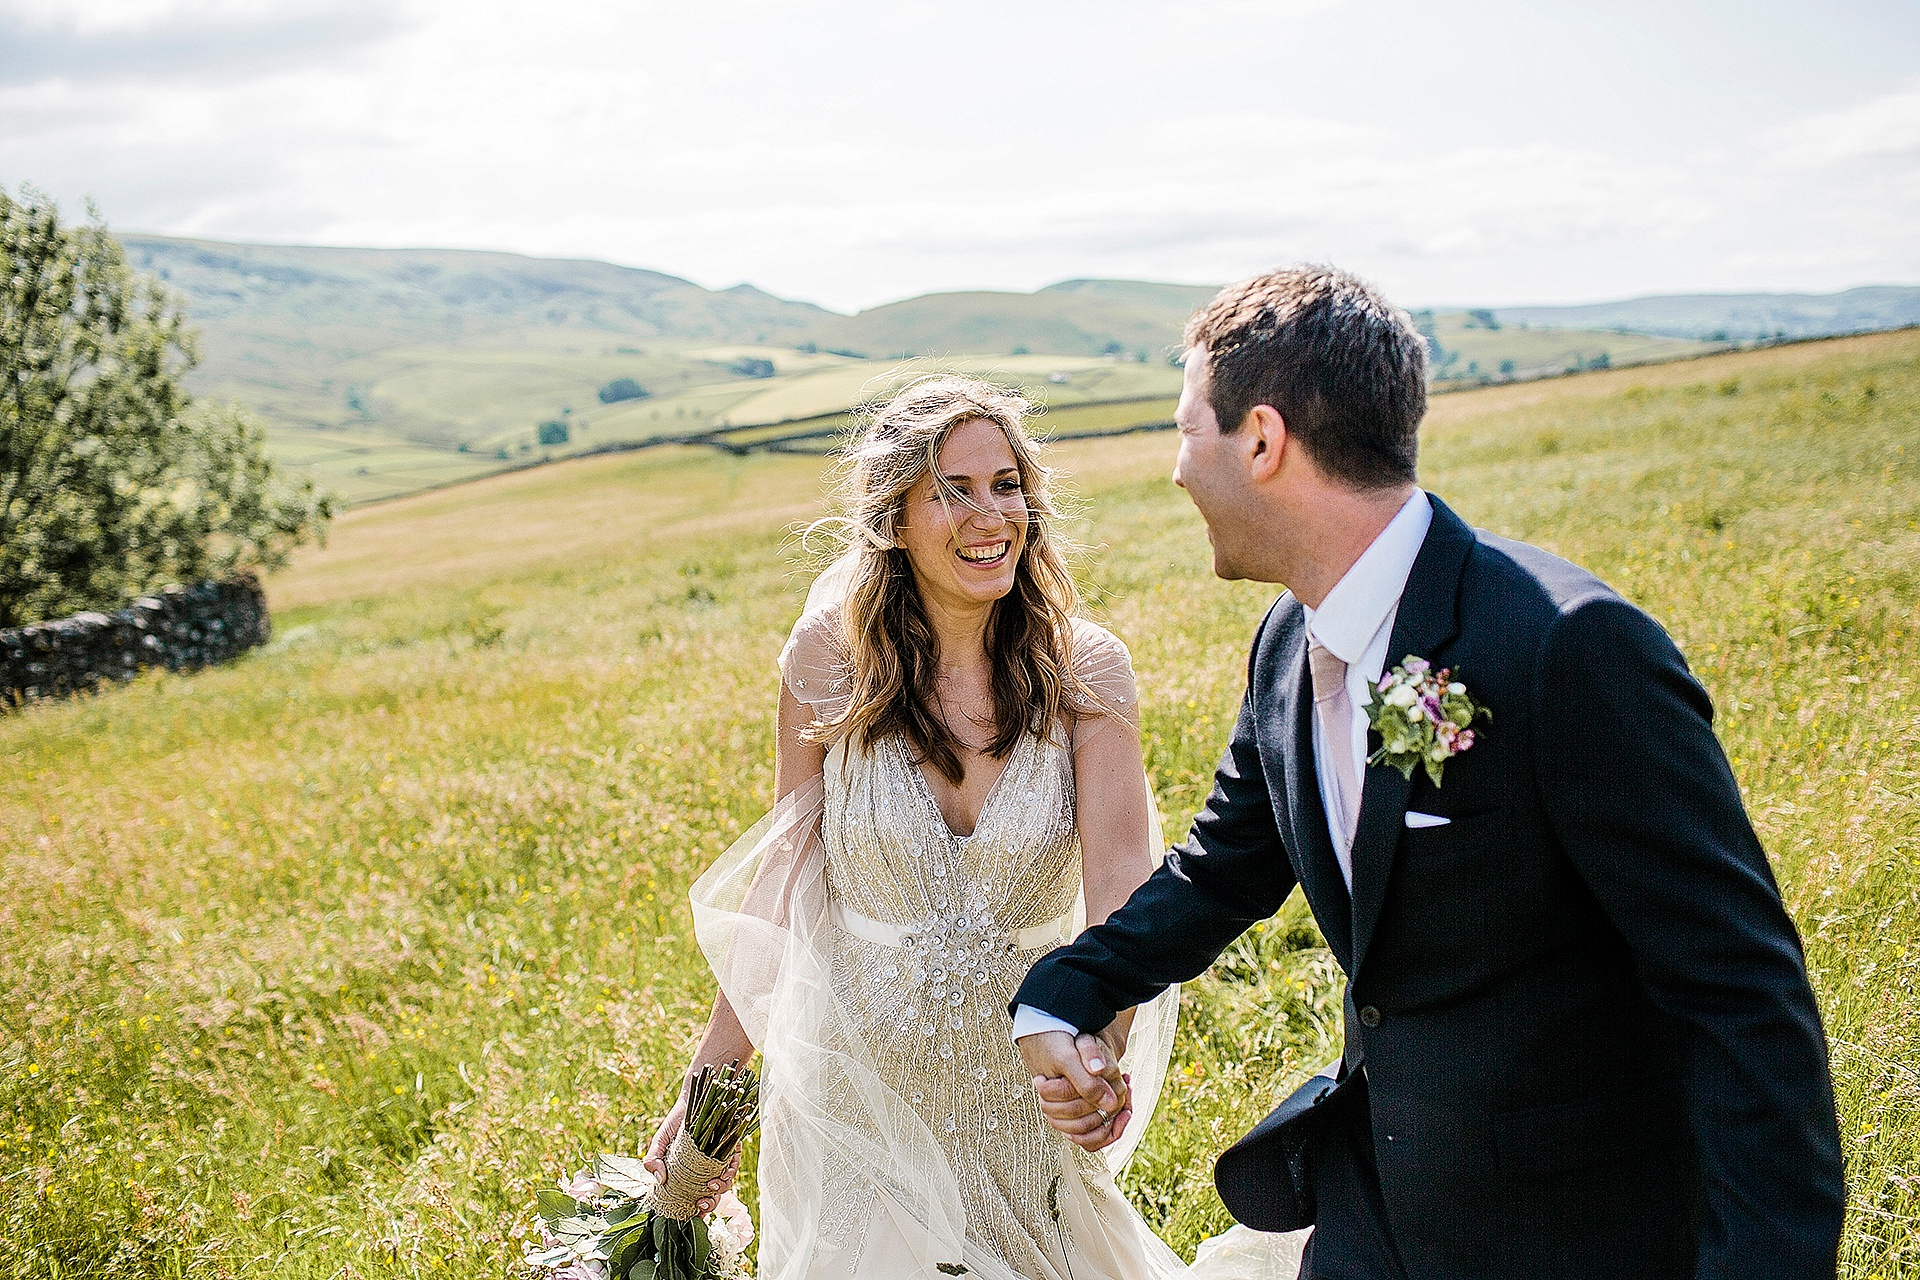 Red Lion Wedding in The Yorkshire Dales from John Day Photography Yorkshire Dales Wedding Photographer